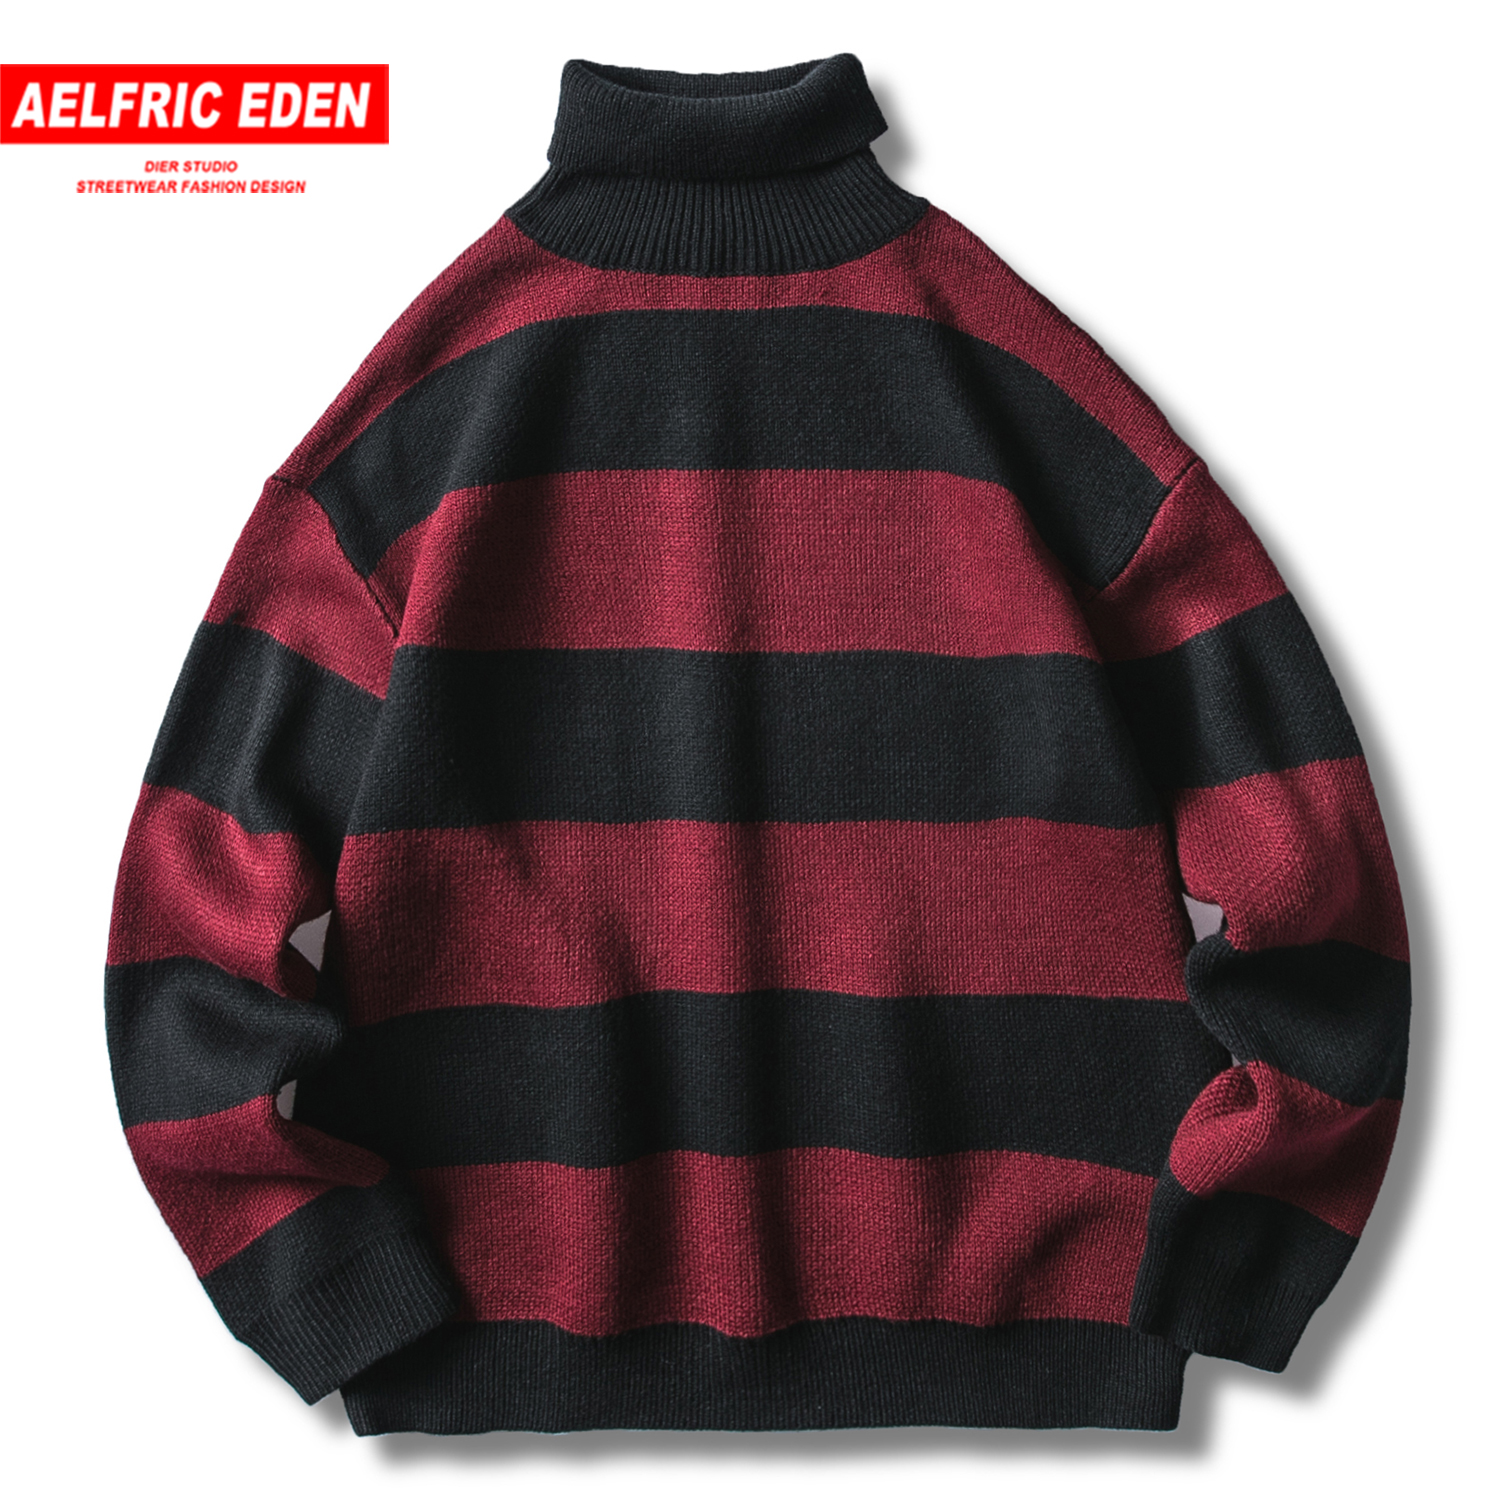 Aelfric Eden Vintage Stripe Turtleneck Mens Knitted Sweaters Fashion Male Tops 2019 Casual Harajuku Streetwear Hip Hop Pullover